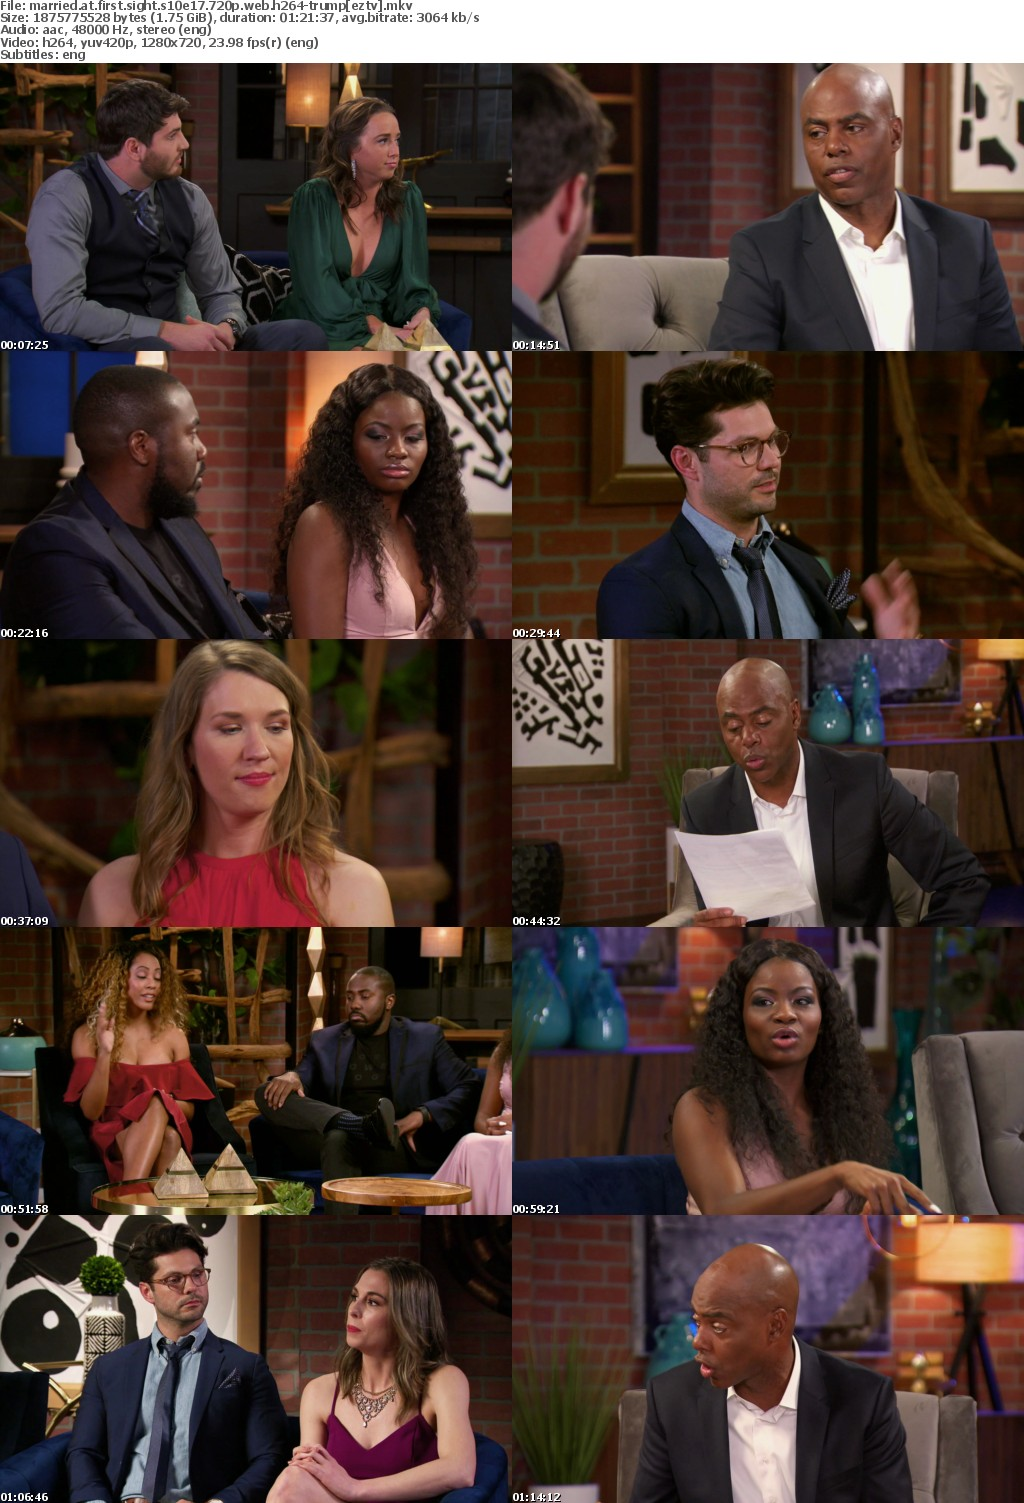 Married At First Sight S10E17 720p WEB h264-TRUMP